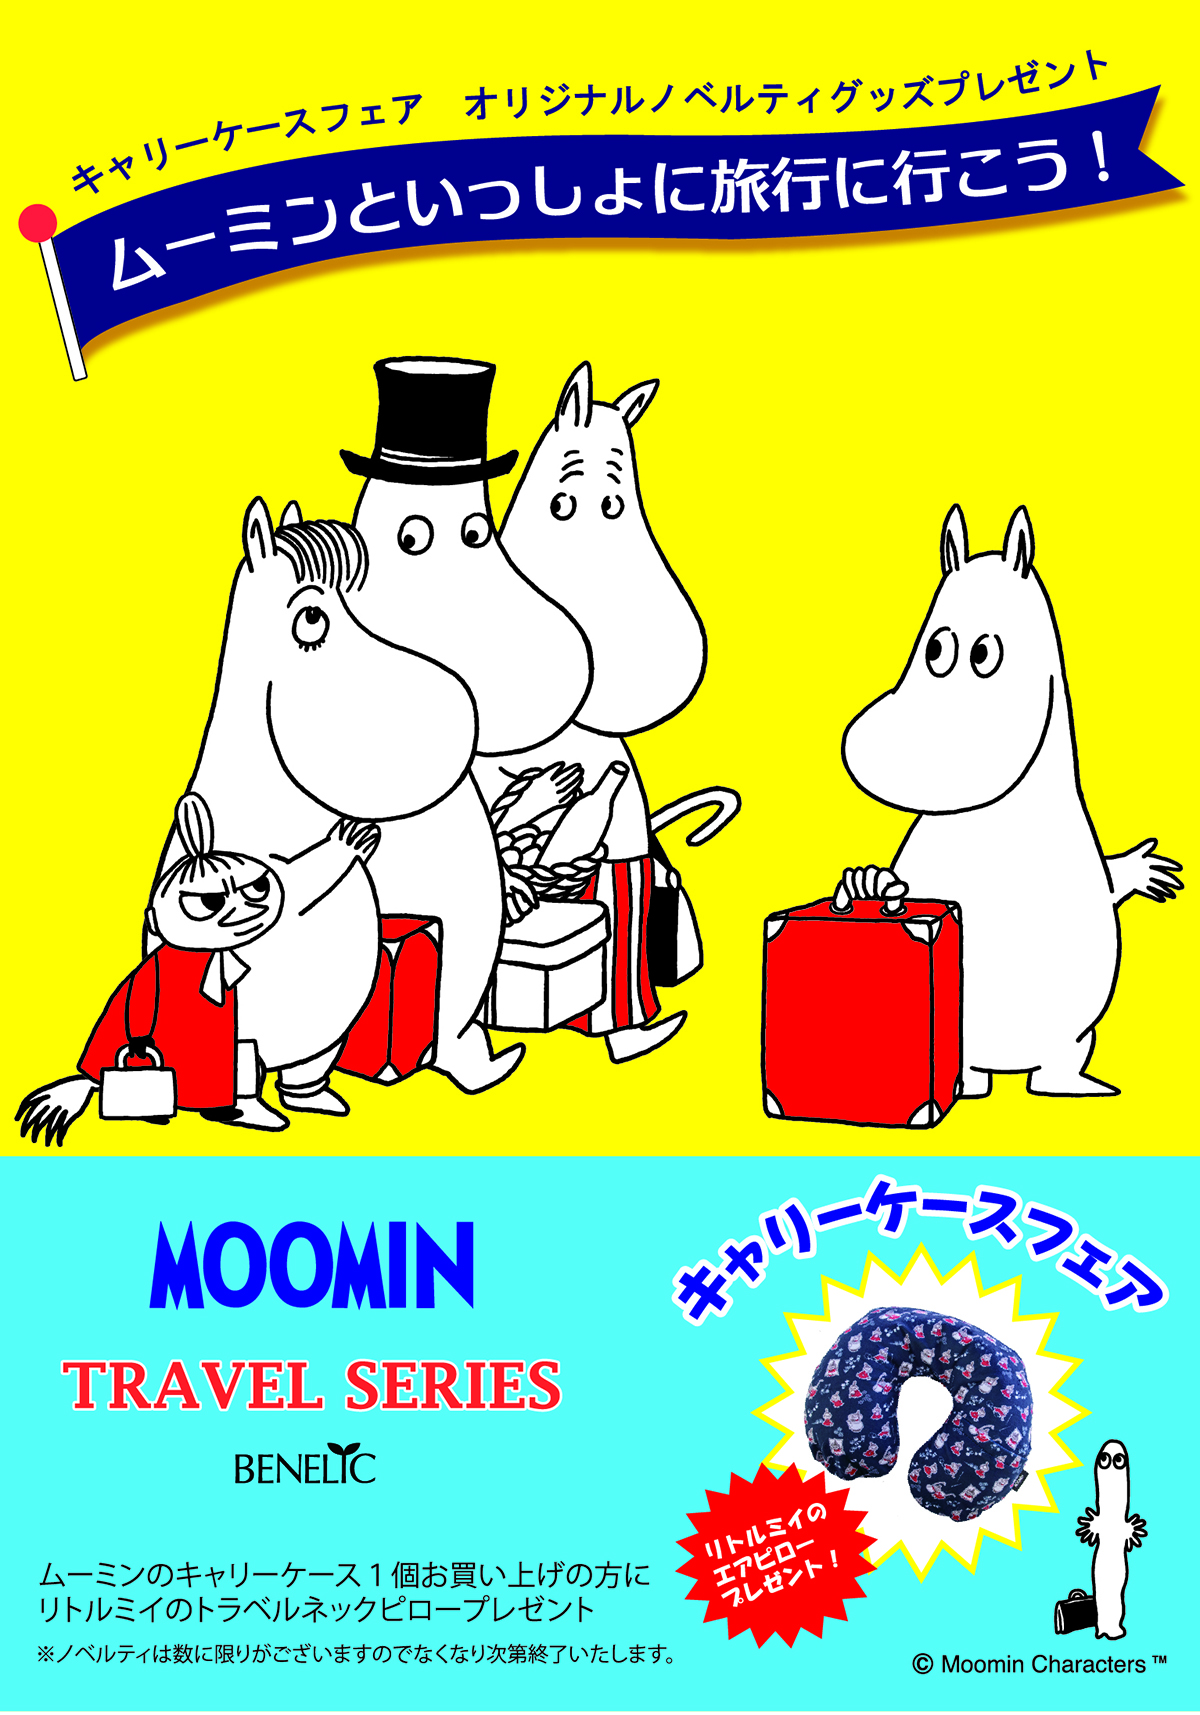 20160417-MOOMIN-TRAVEL-POP-A5P3